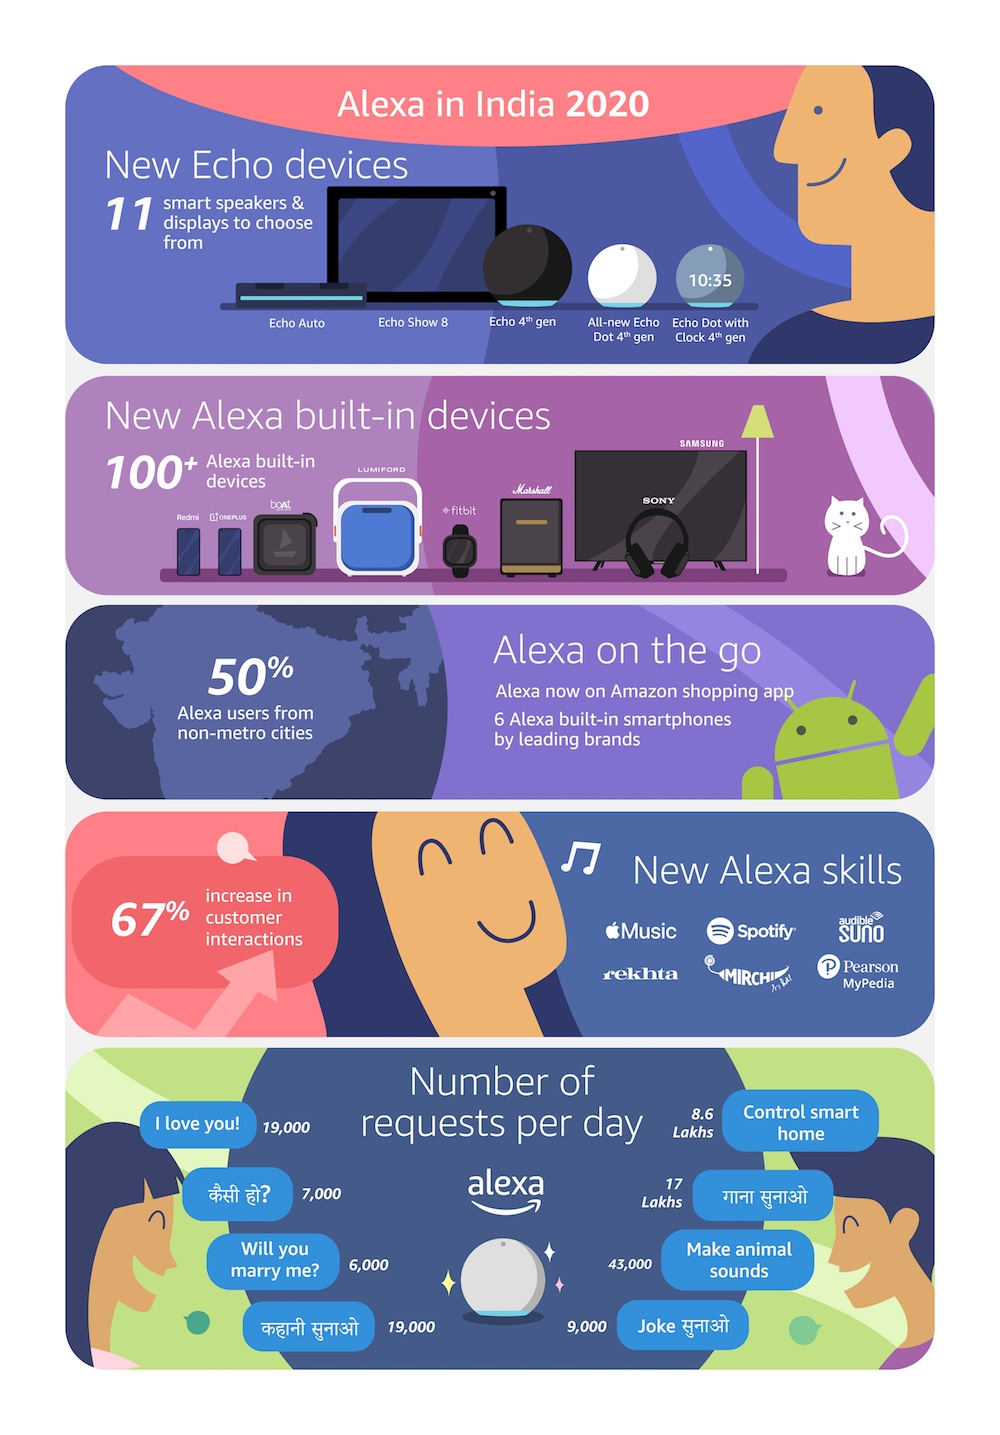 Alexa also debuted on Amazon Shopping App (android) and responded to over 5.8 lakh requests every day. Image: Amazon